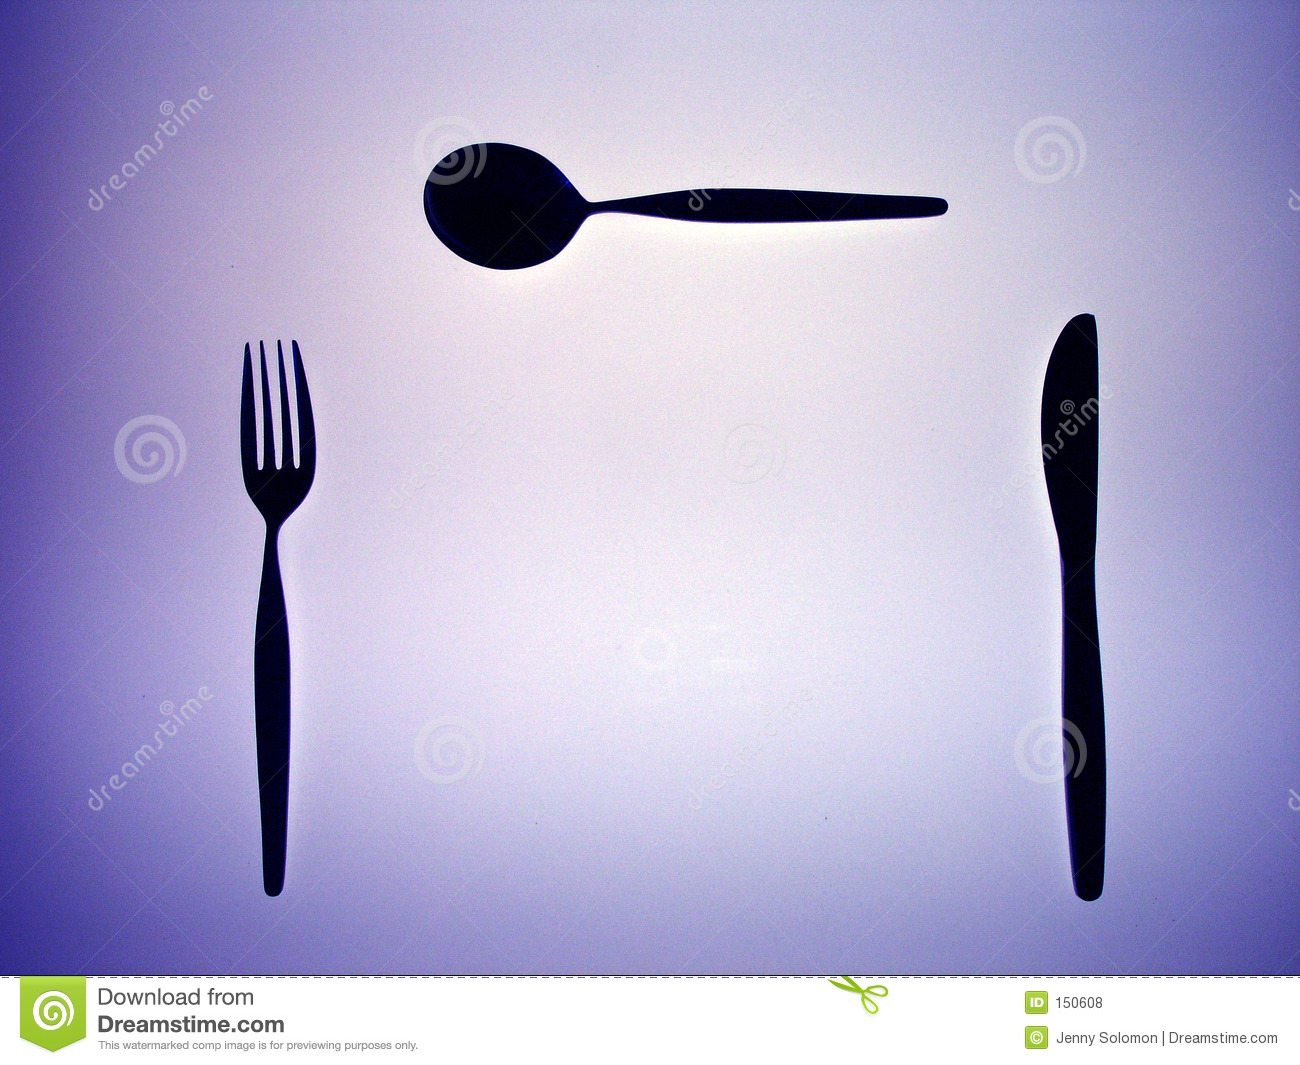 Silhouette of a fork, knife and spoon